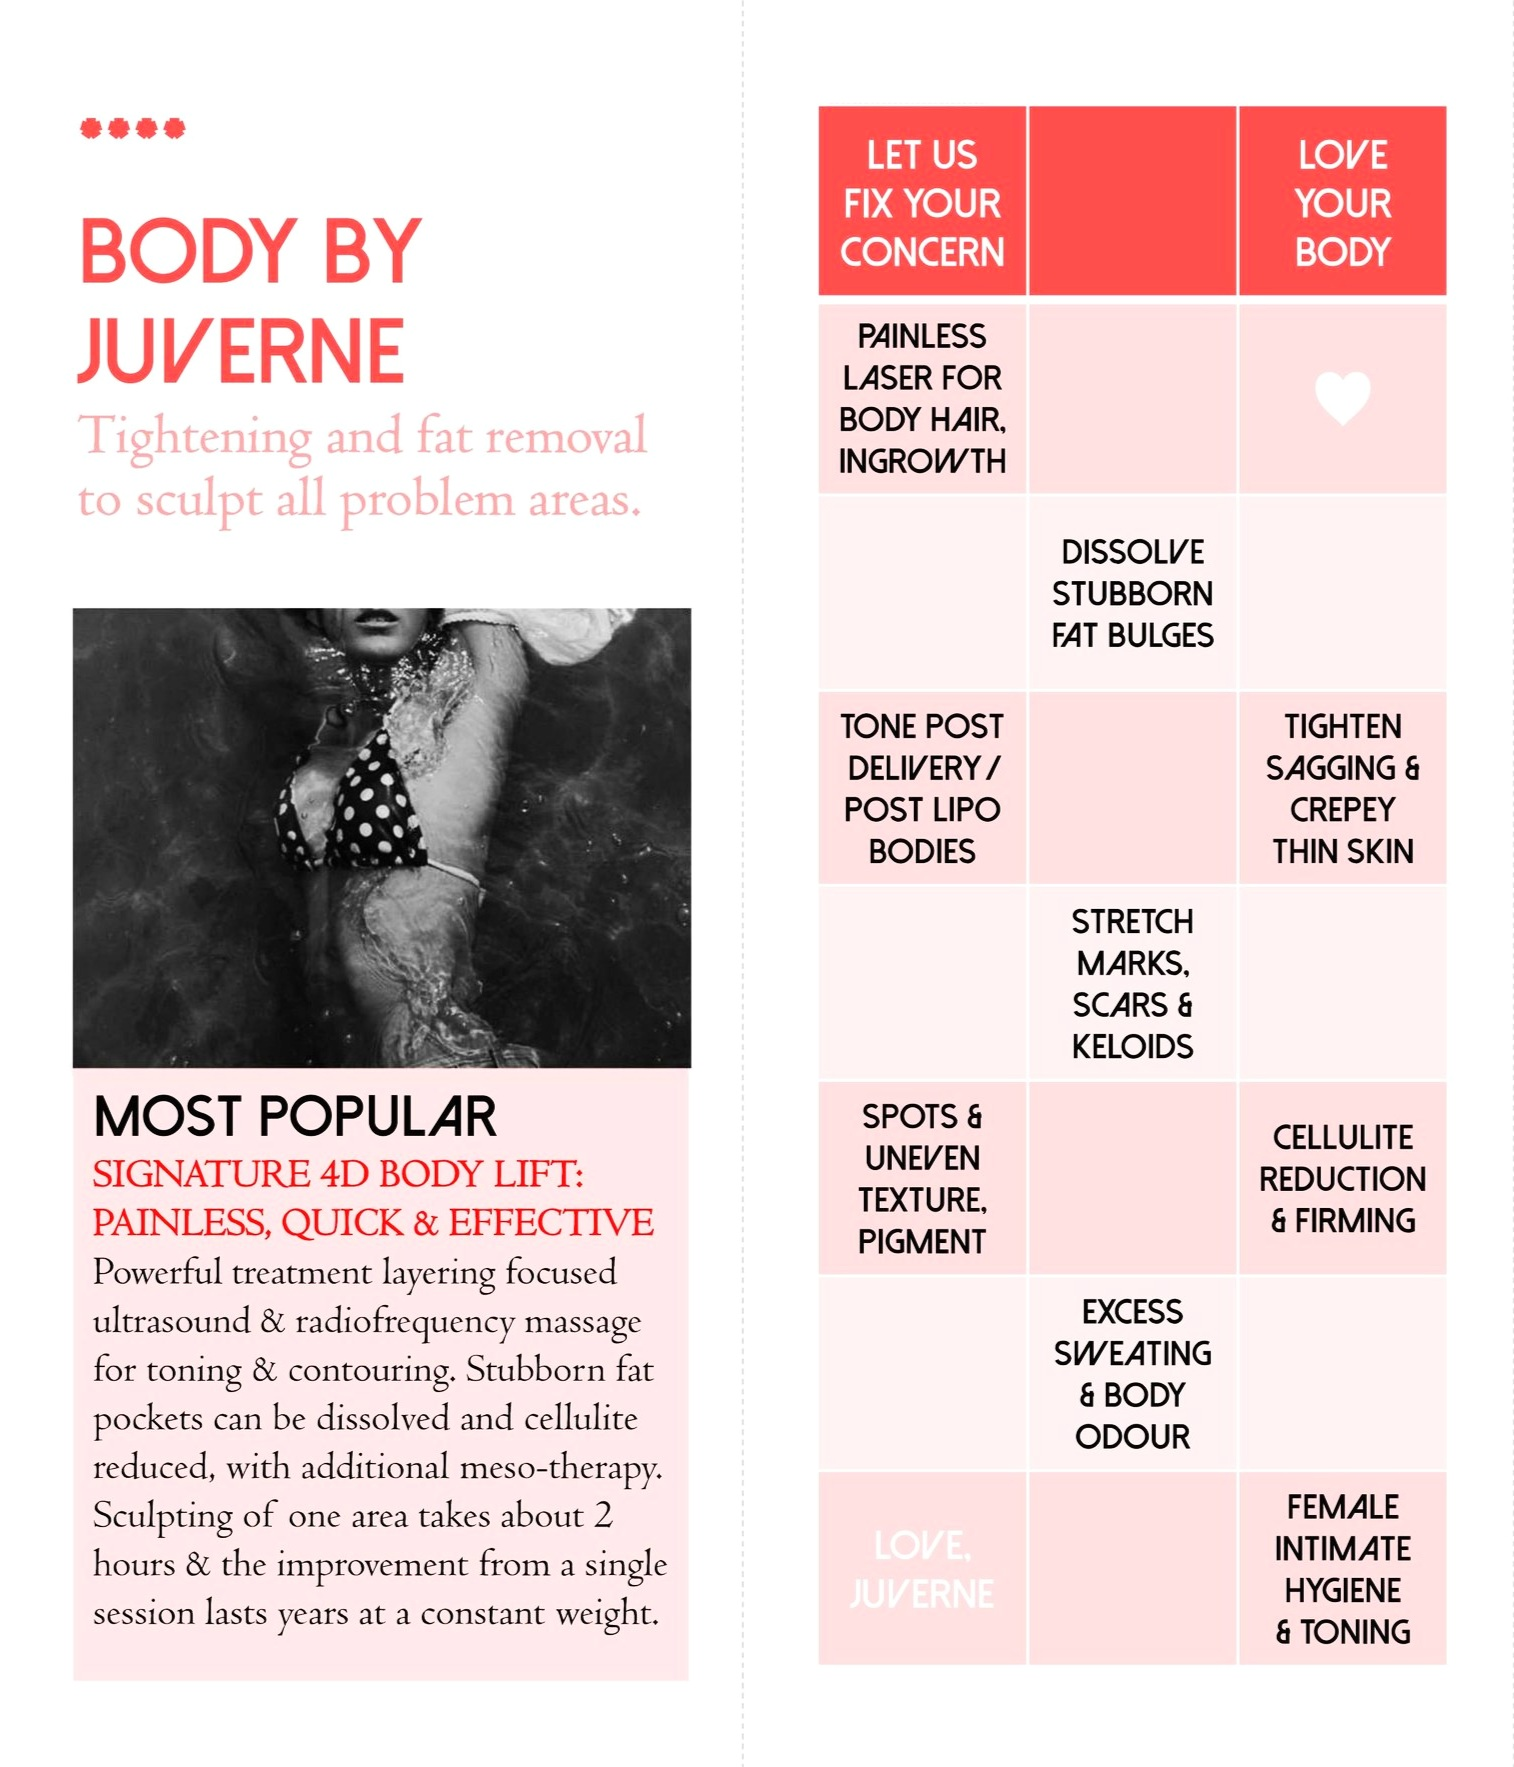 BODY SHAPING AT JUVERNE